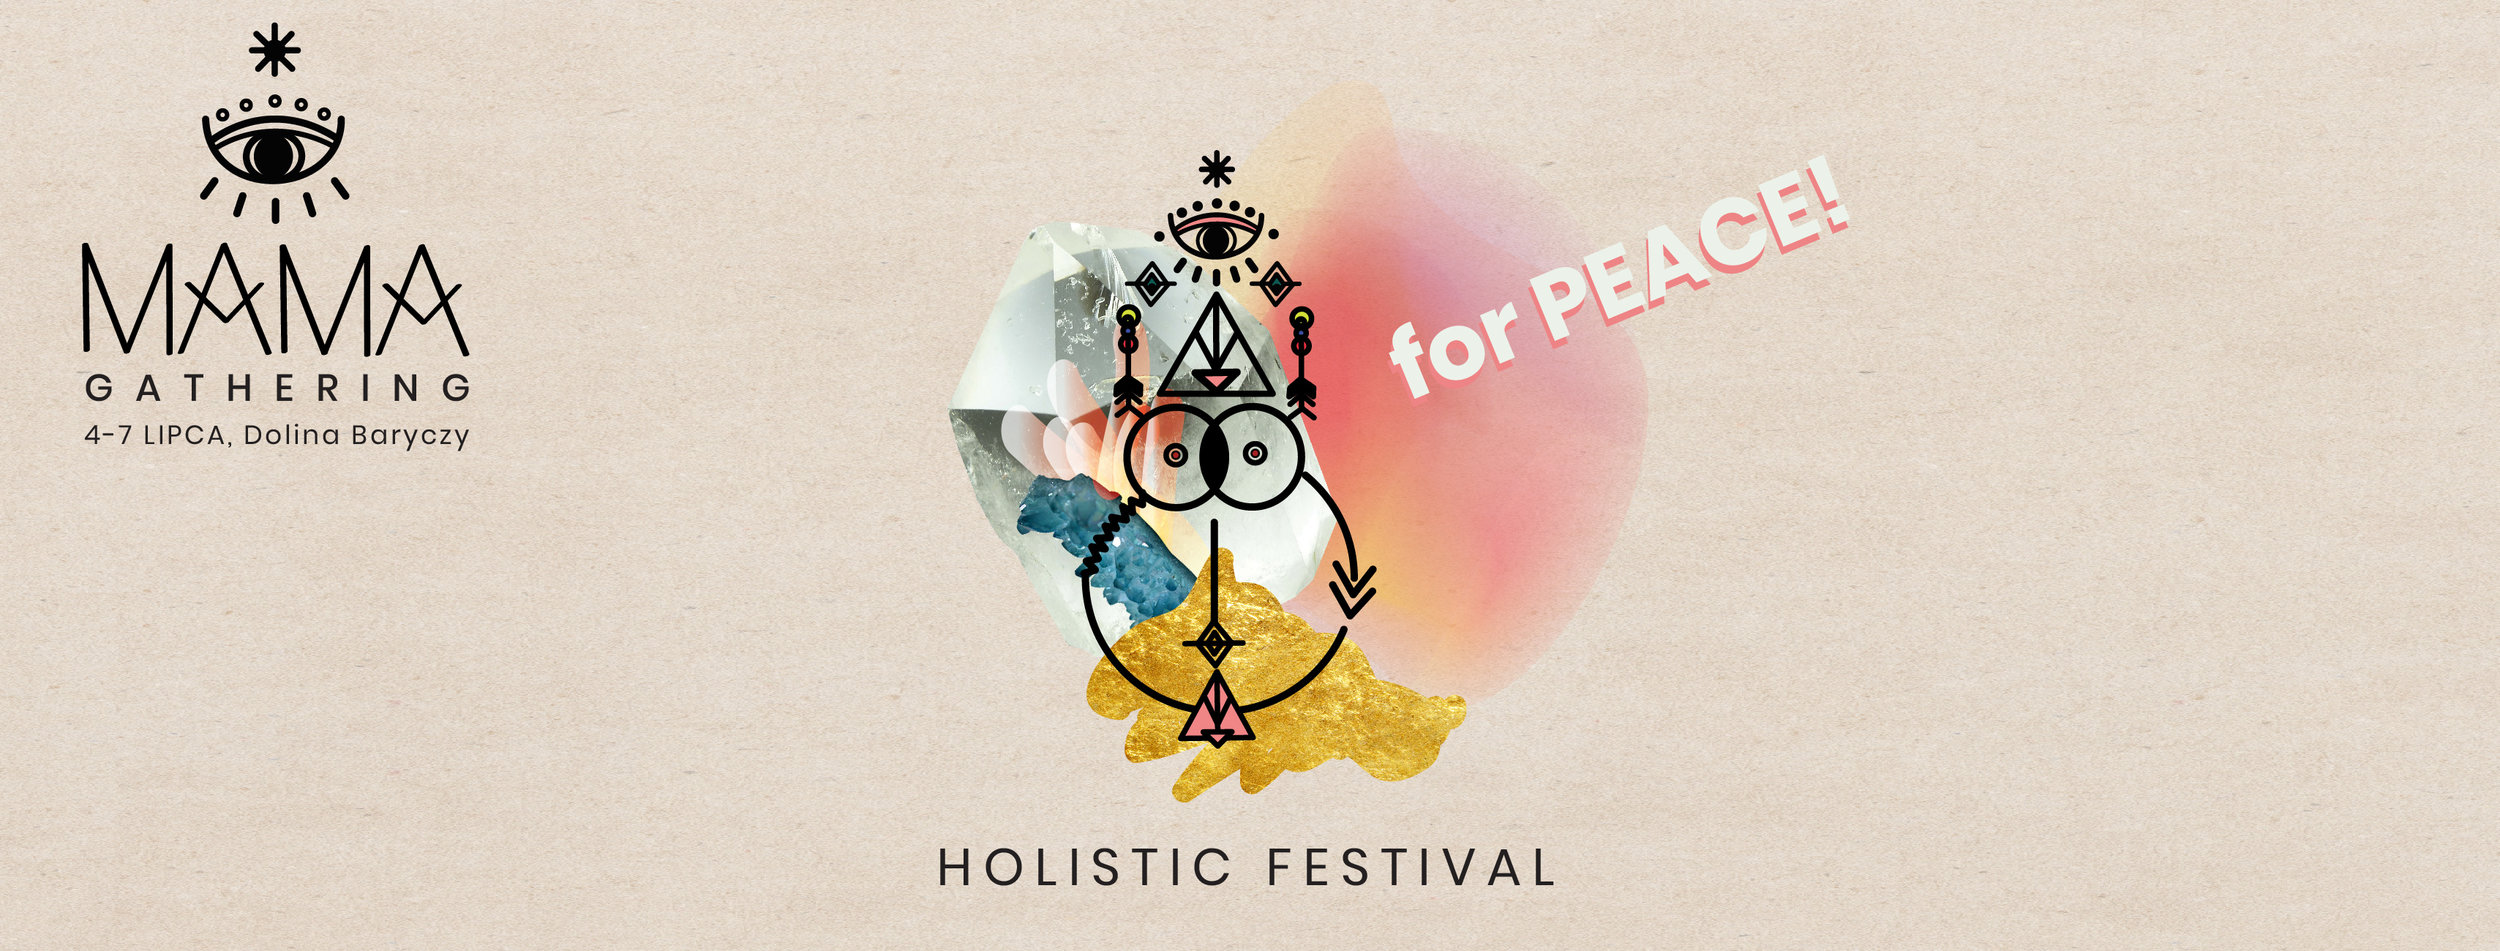 mama+gathering+festival+for+peace.jpg